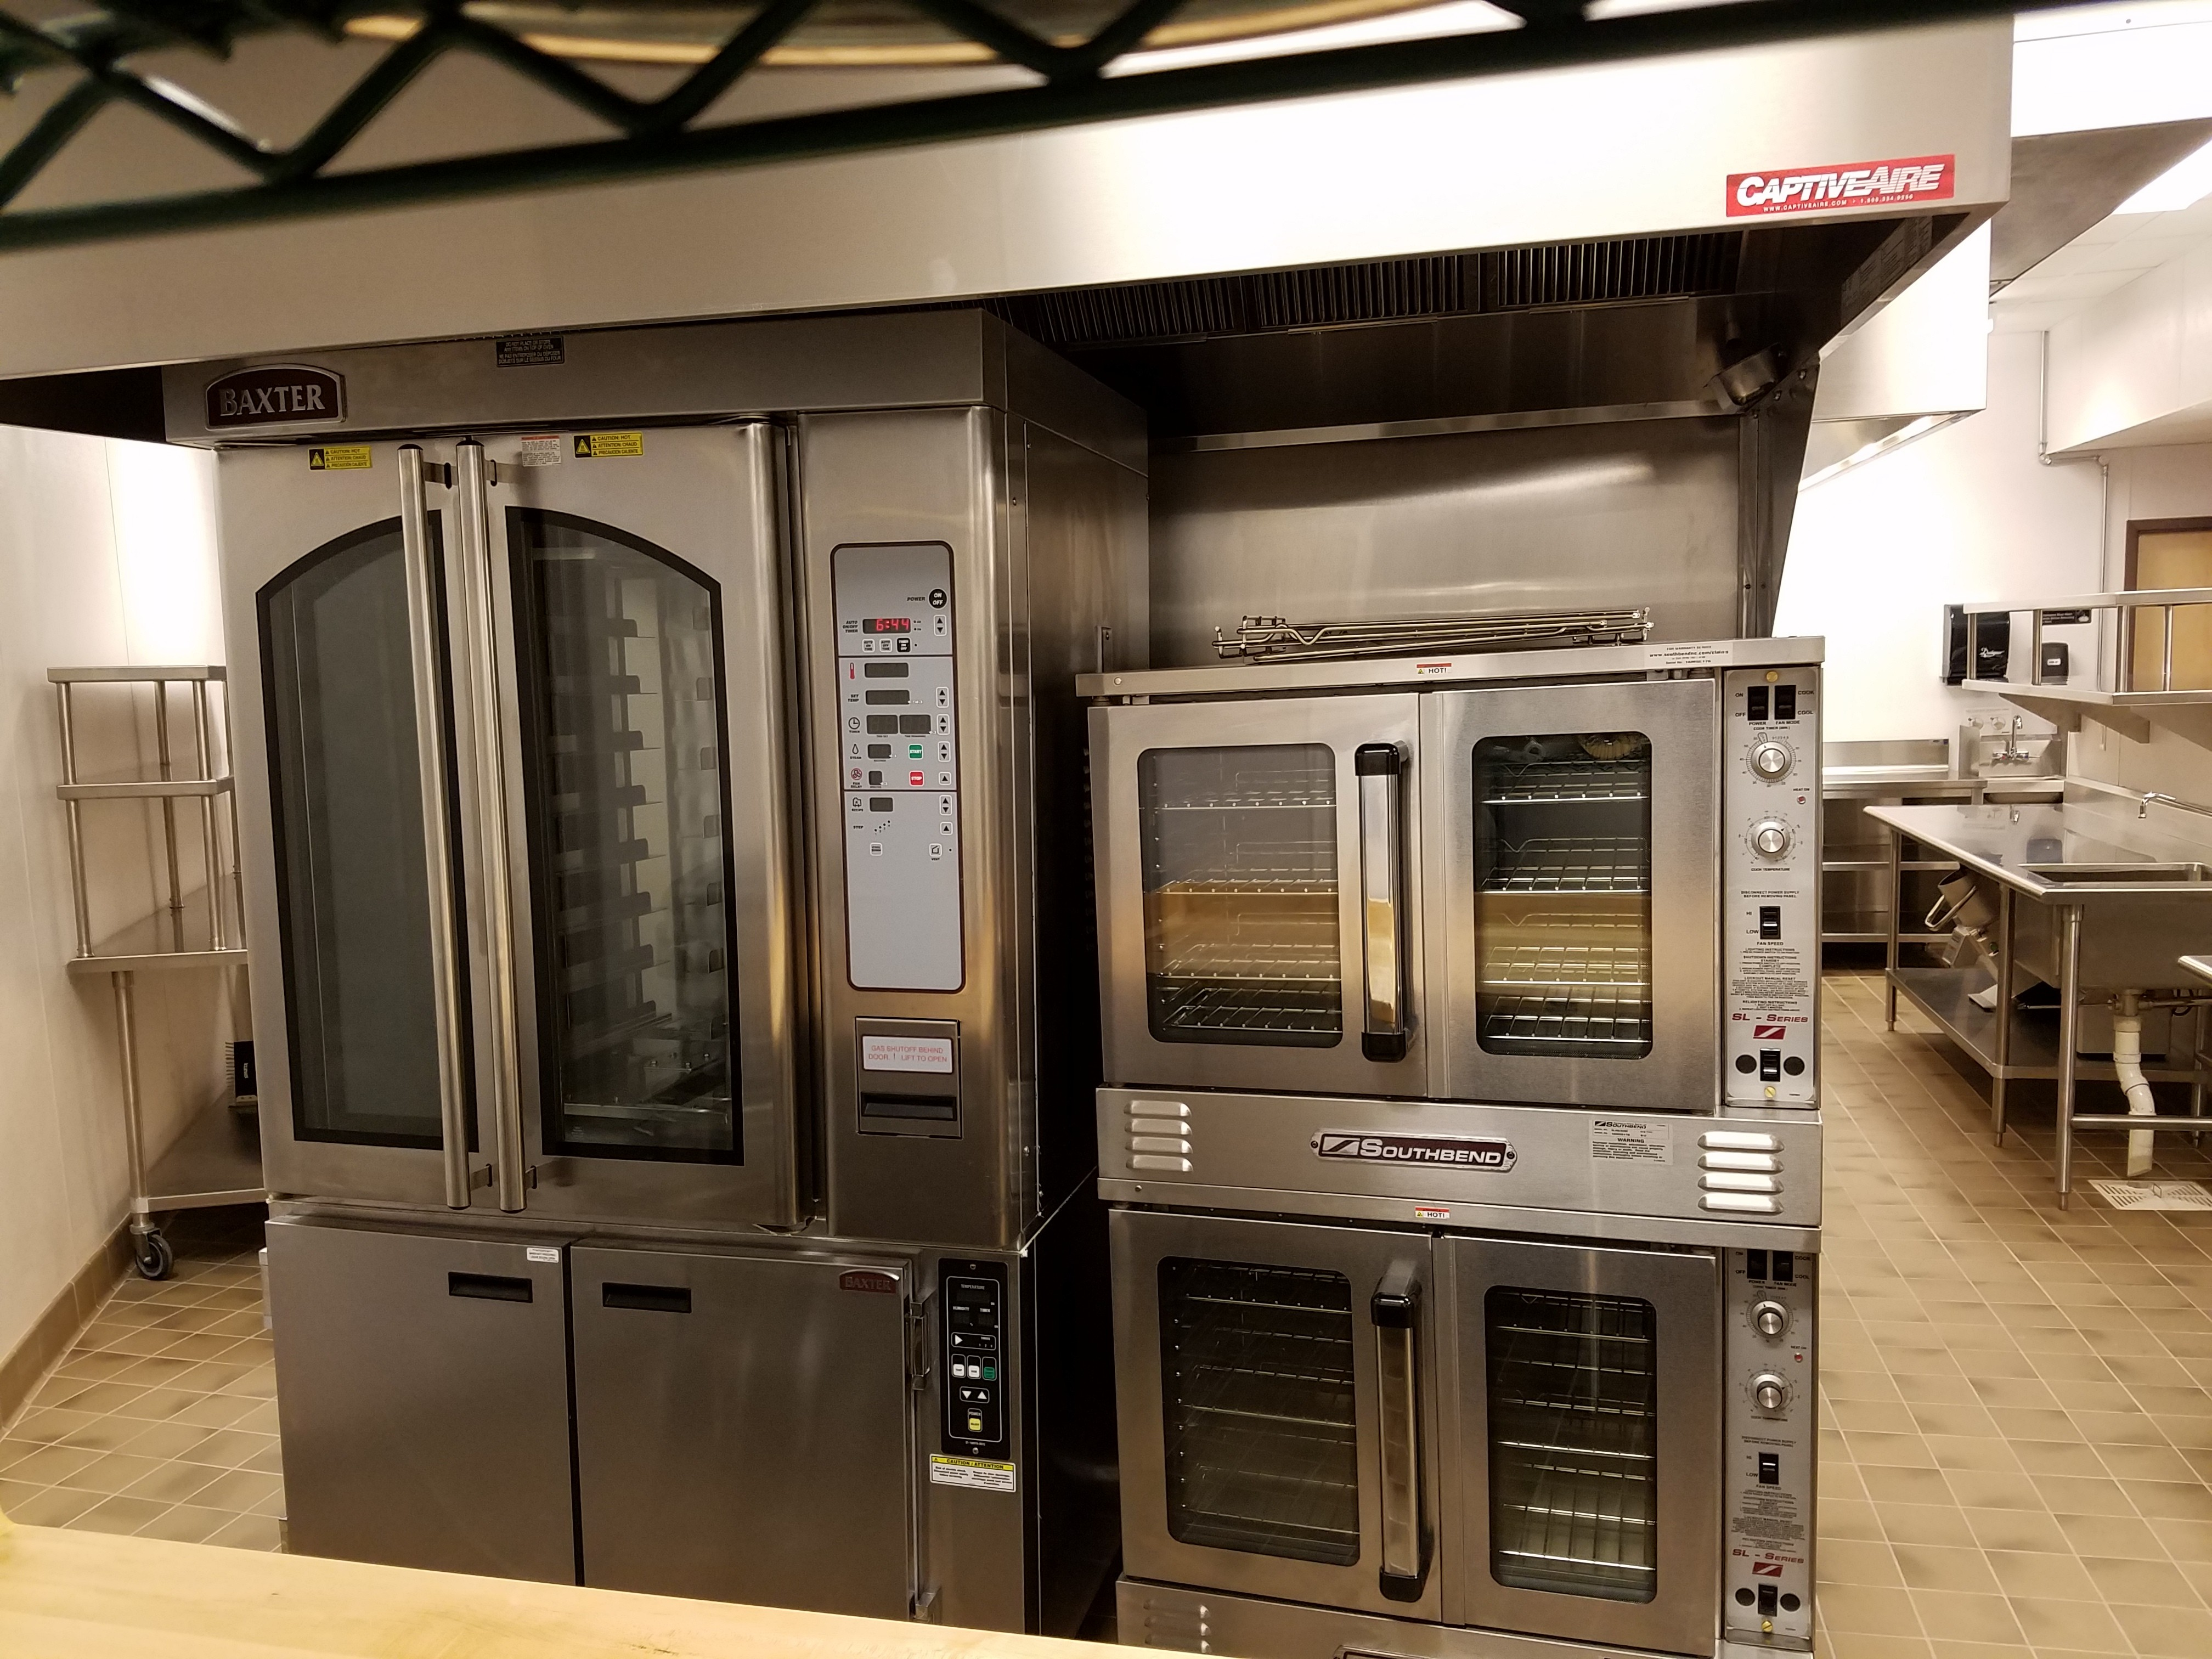 convection ovens (Baxter and Southbend)